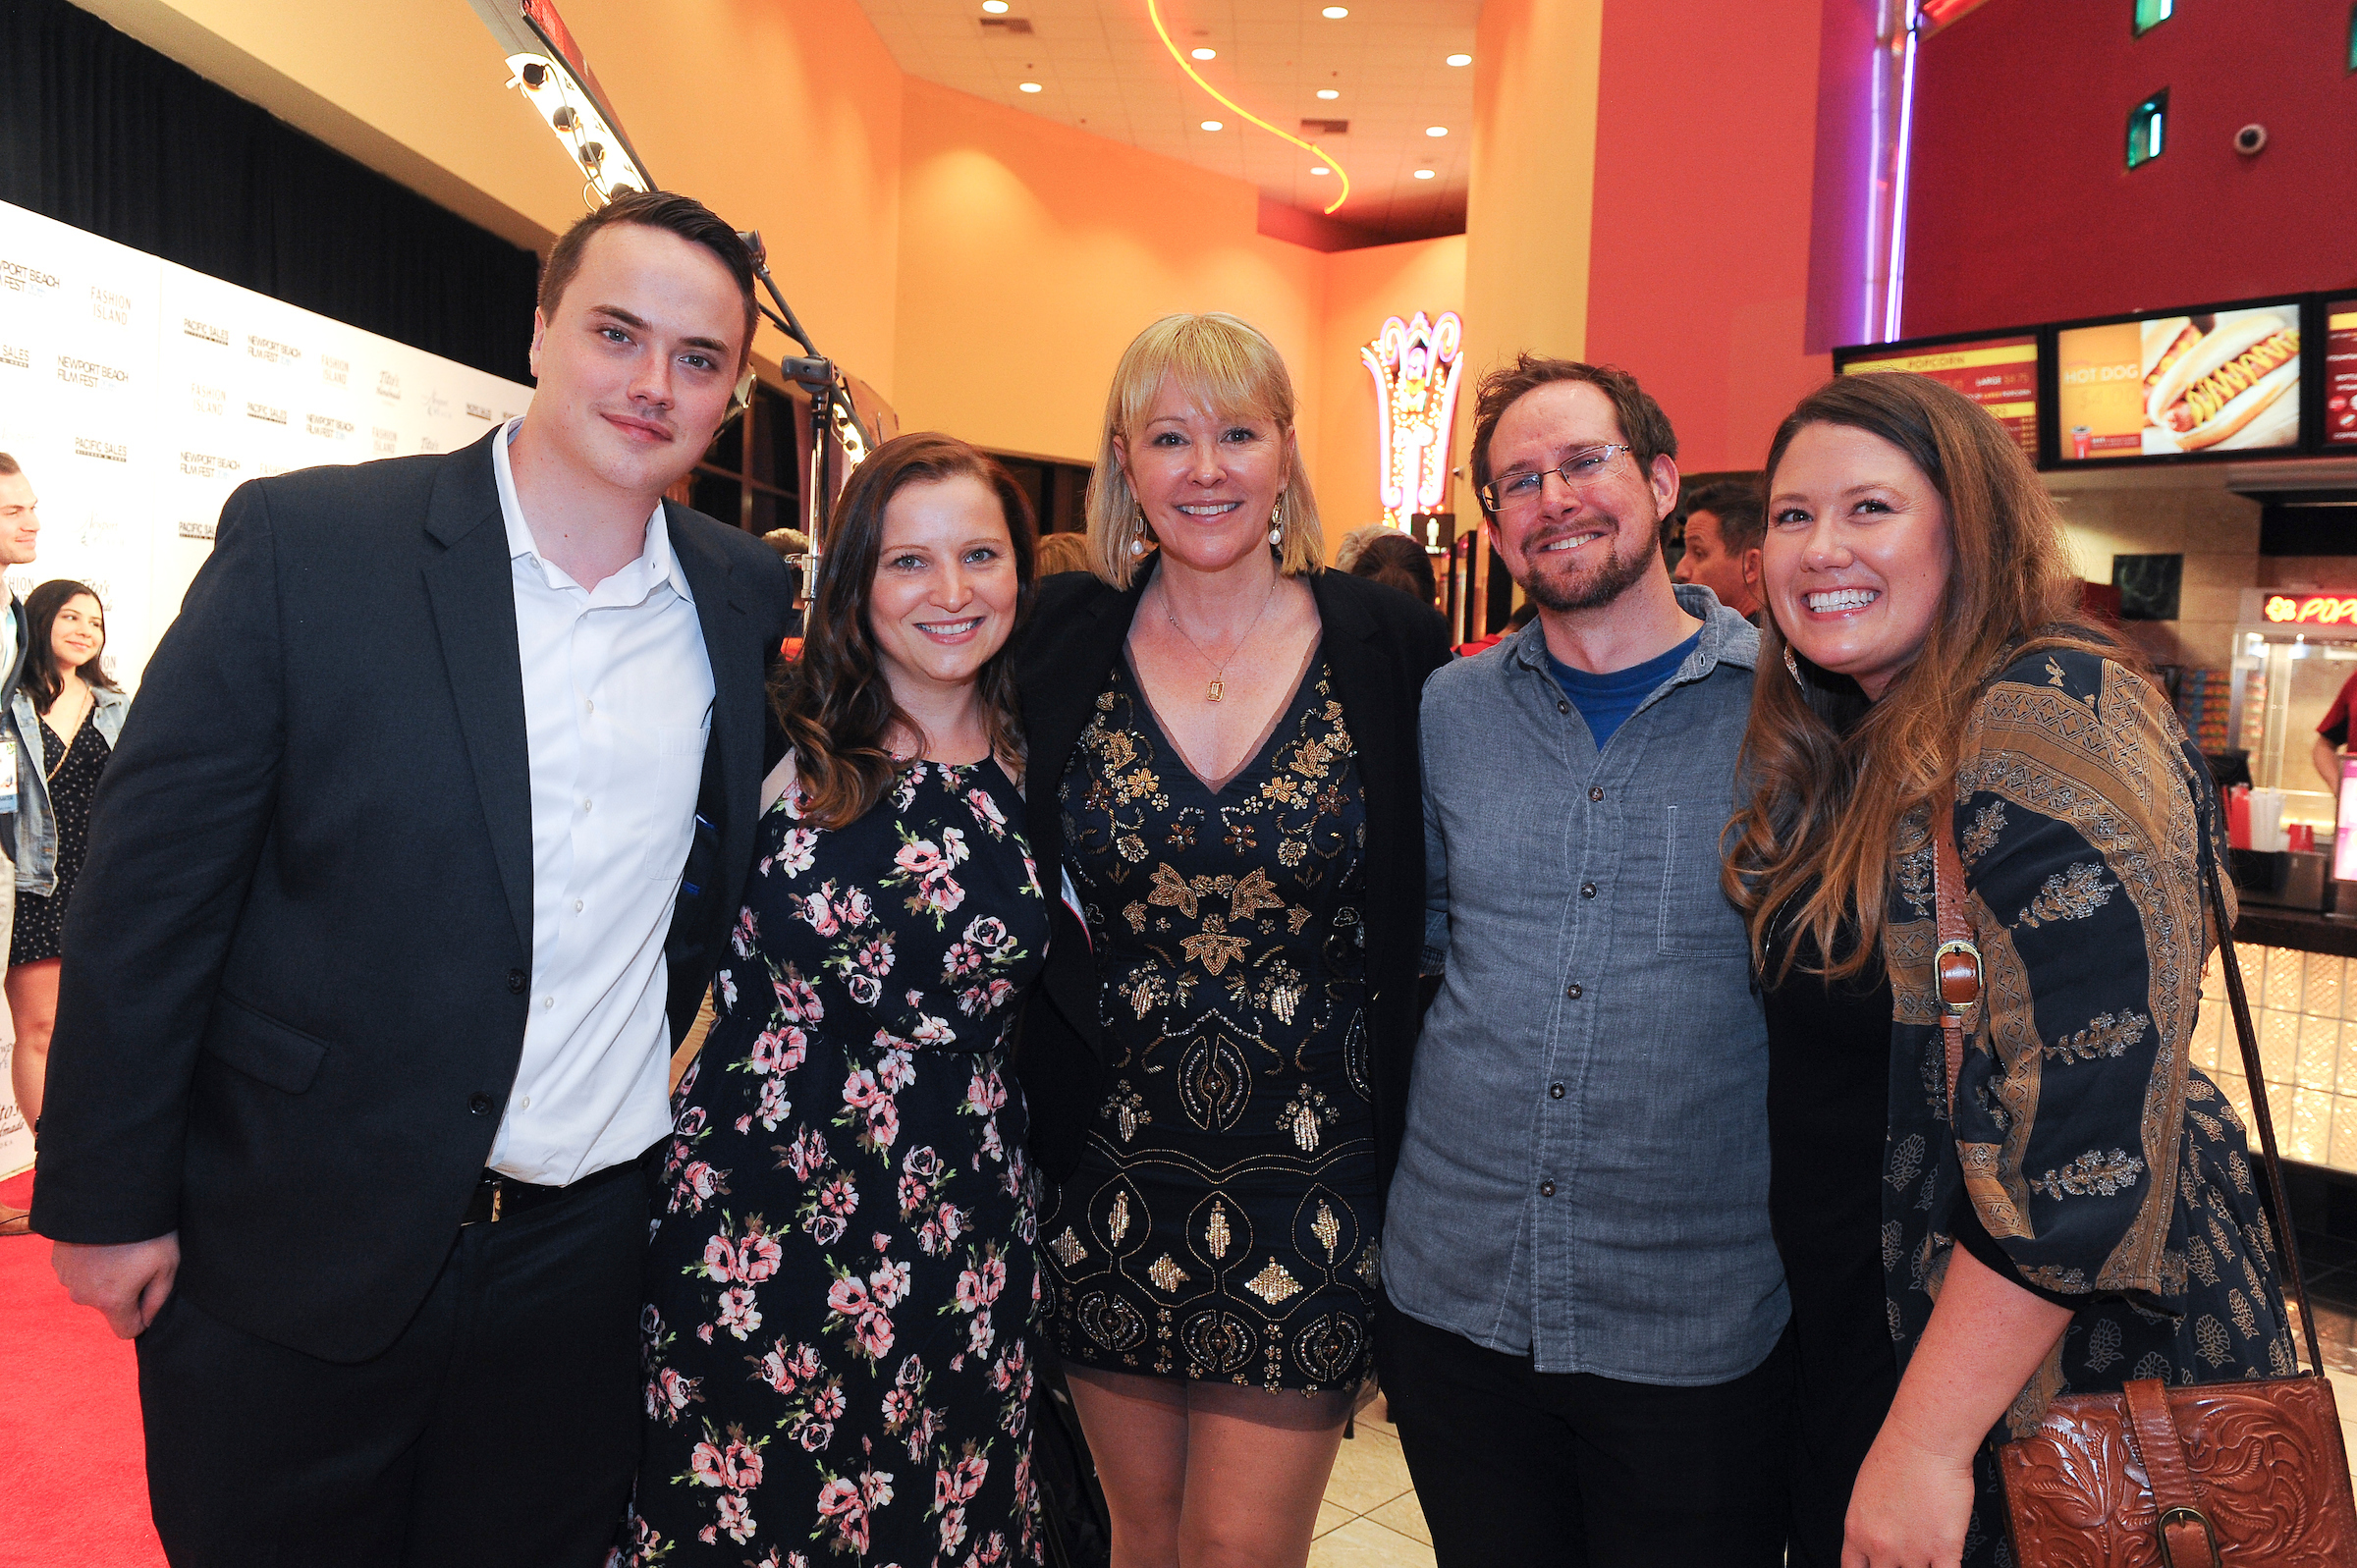 David Aaron Waters and David Weitzel bring their lovely significant others to represent Technicolor at world premiere with Director, Kerry David